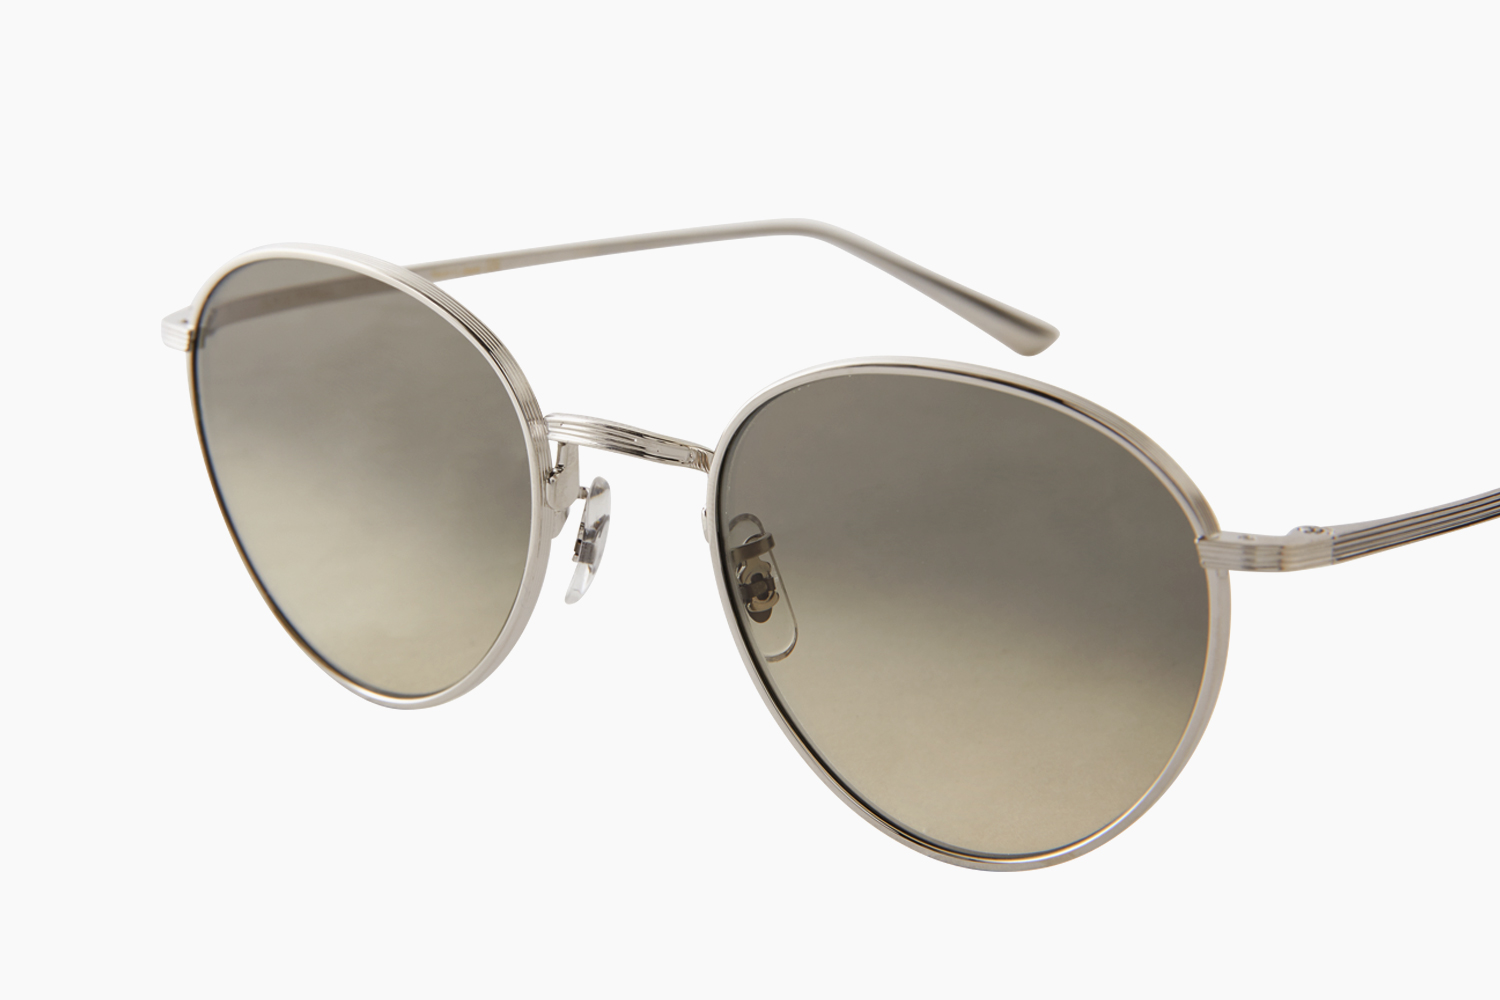 OLIVER PEOPLES THE ROW|BROWNSTONE2 - Silver|OLIVER PEOPLES